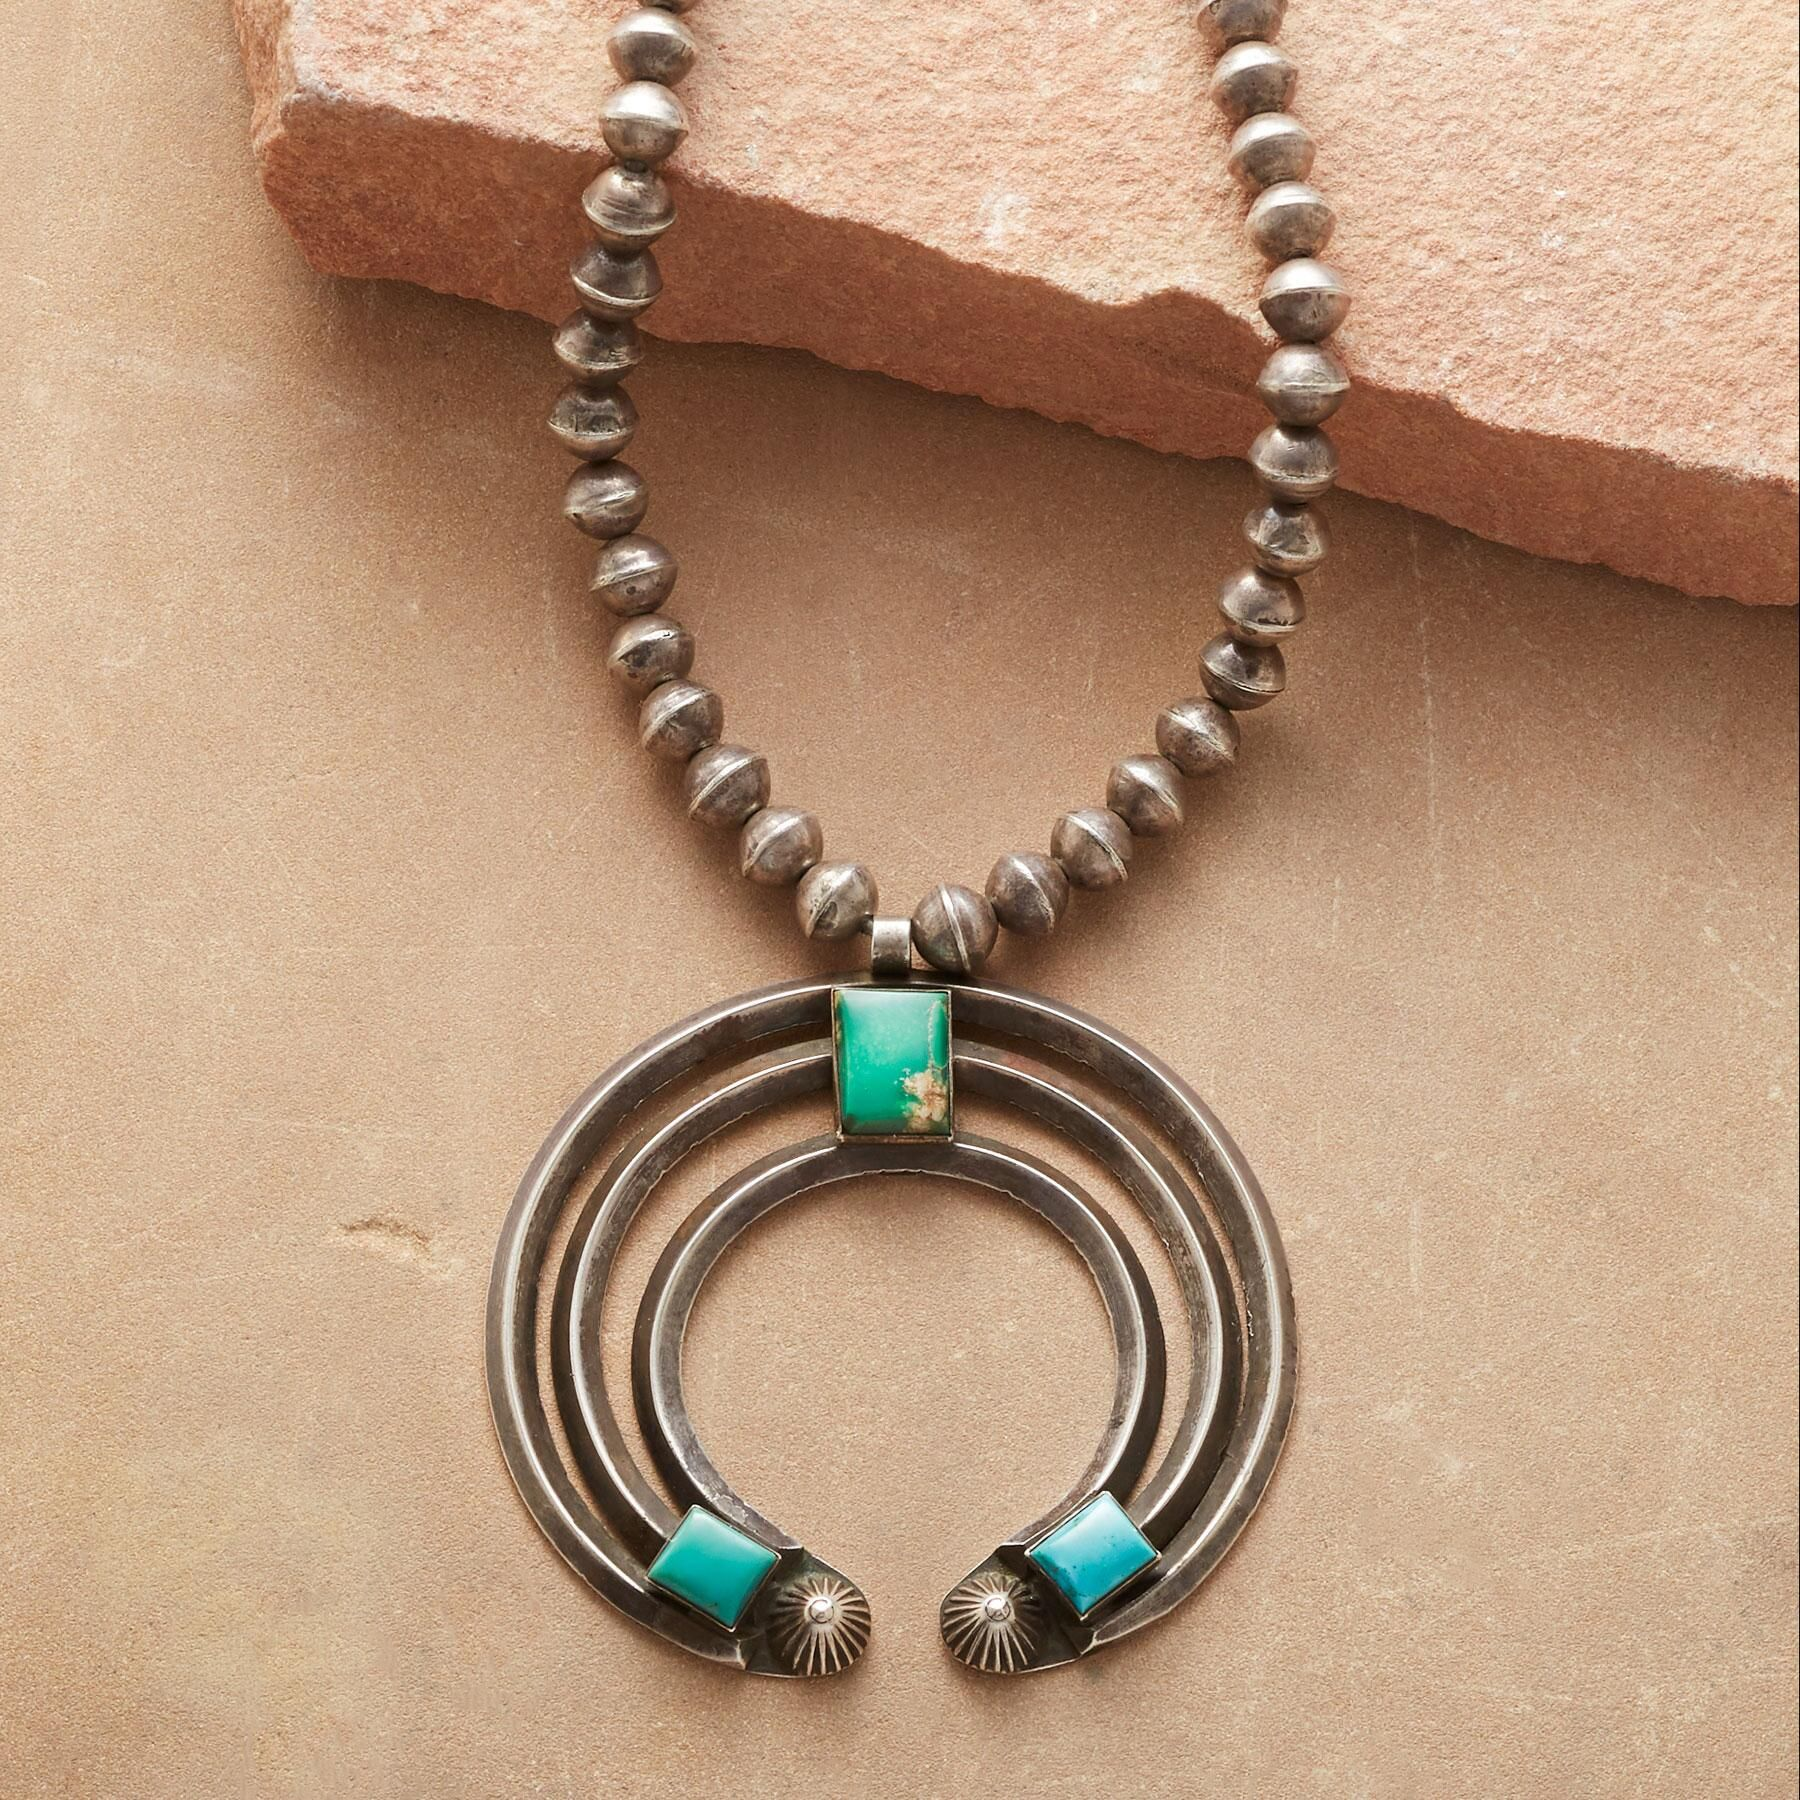 silver pendant product and sterling turquoise by american navajo native will denetdale artist indian royston